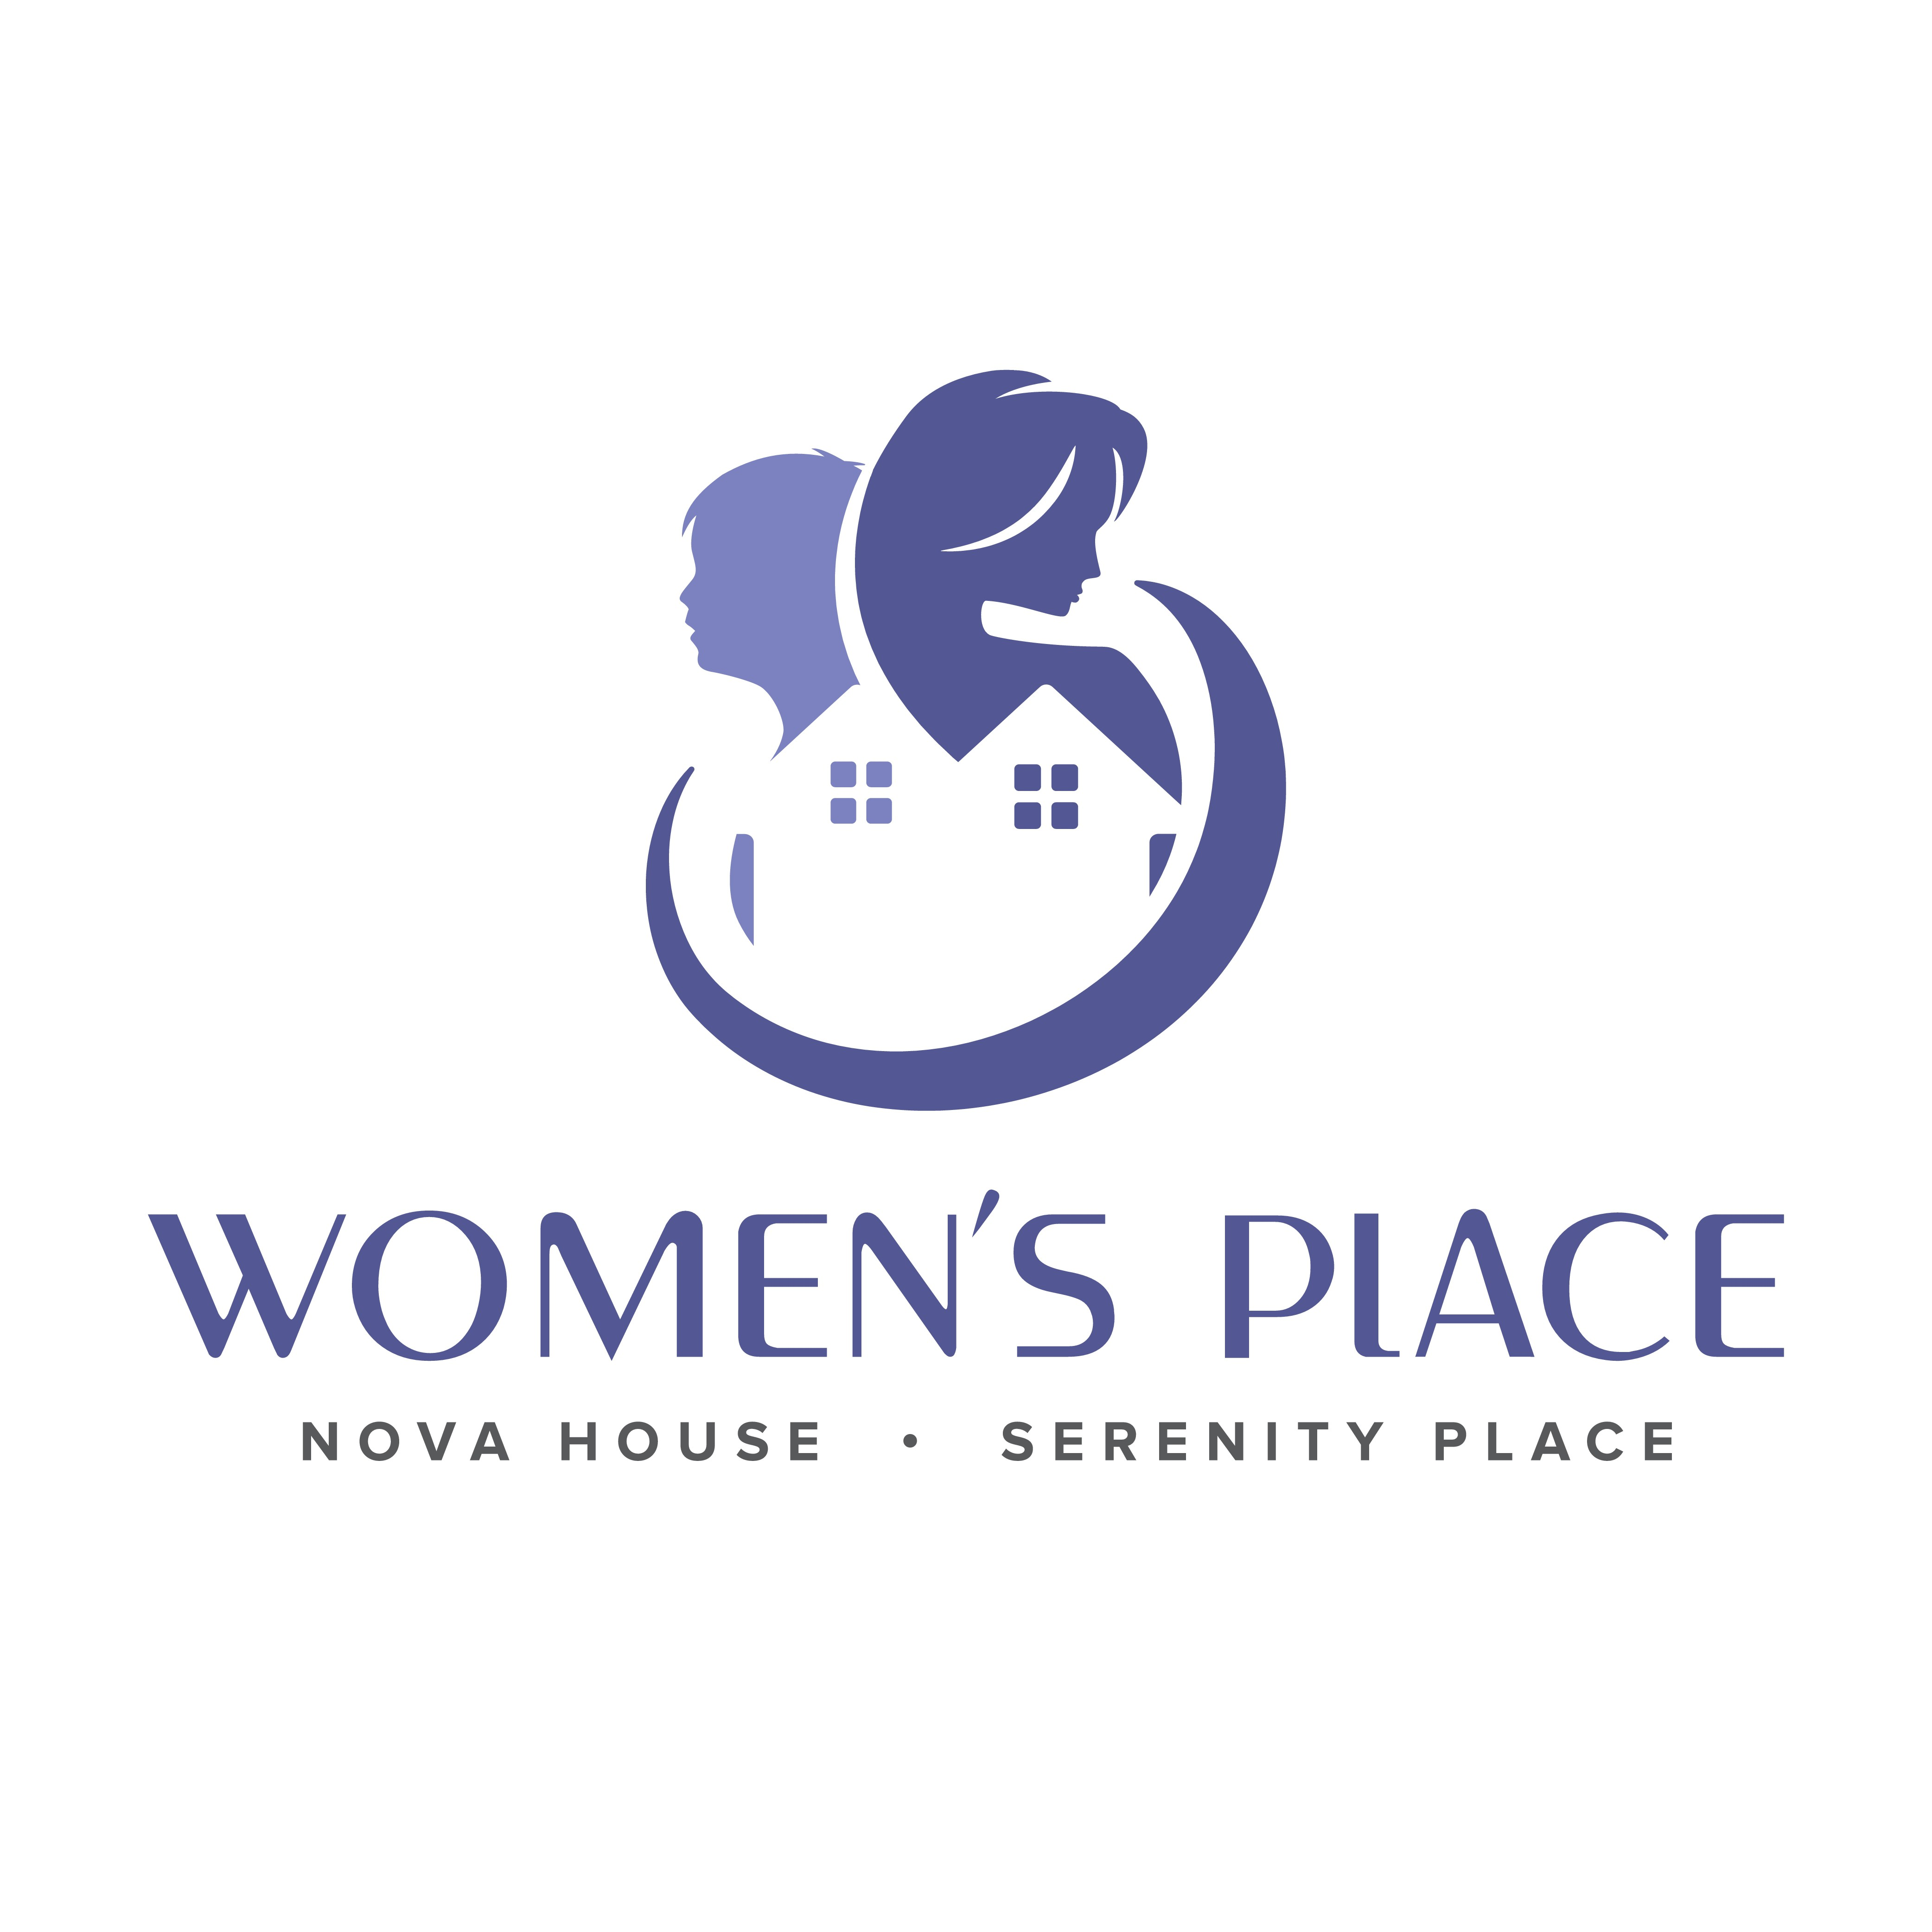 Domestic Violence - it's everybody's business - help Women's Place revitalize its brand identity!